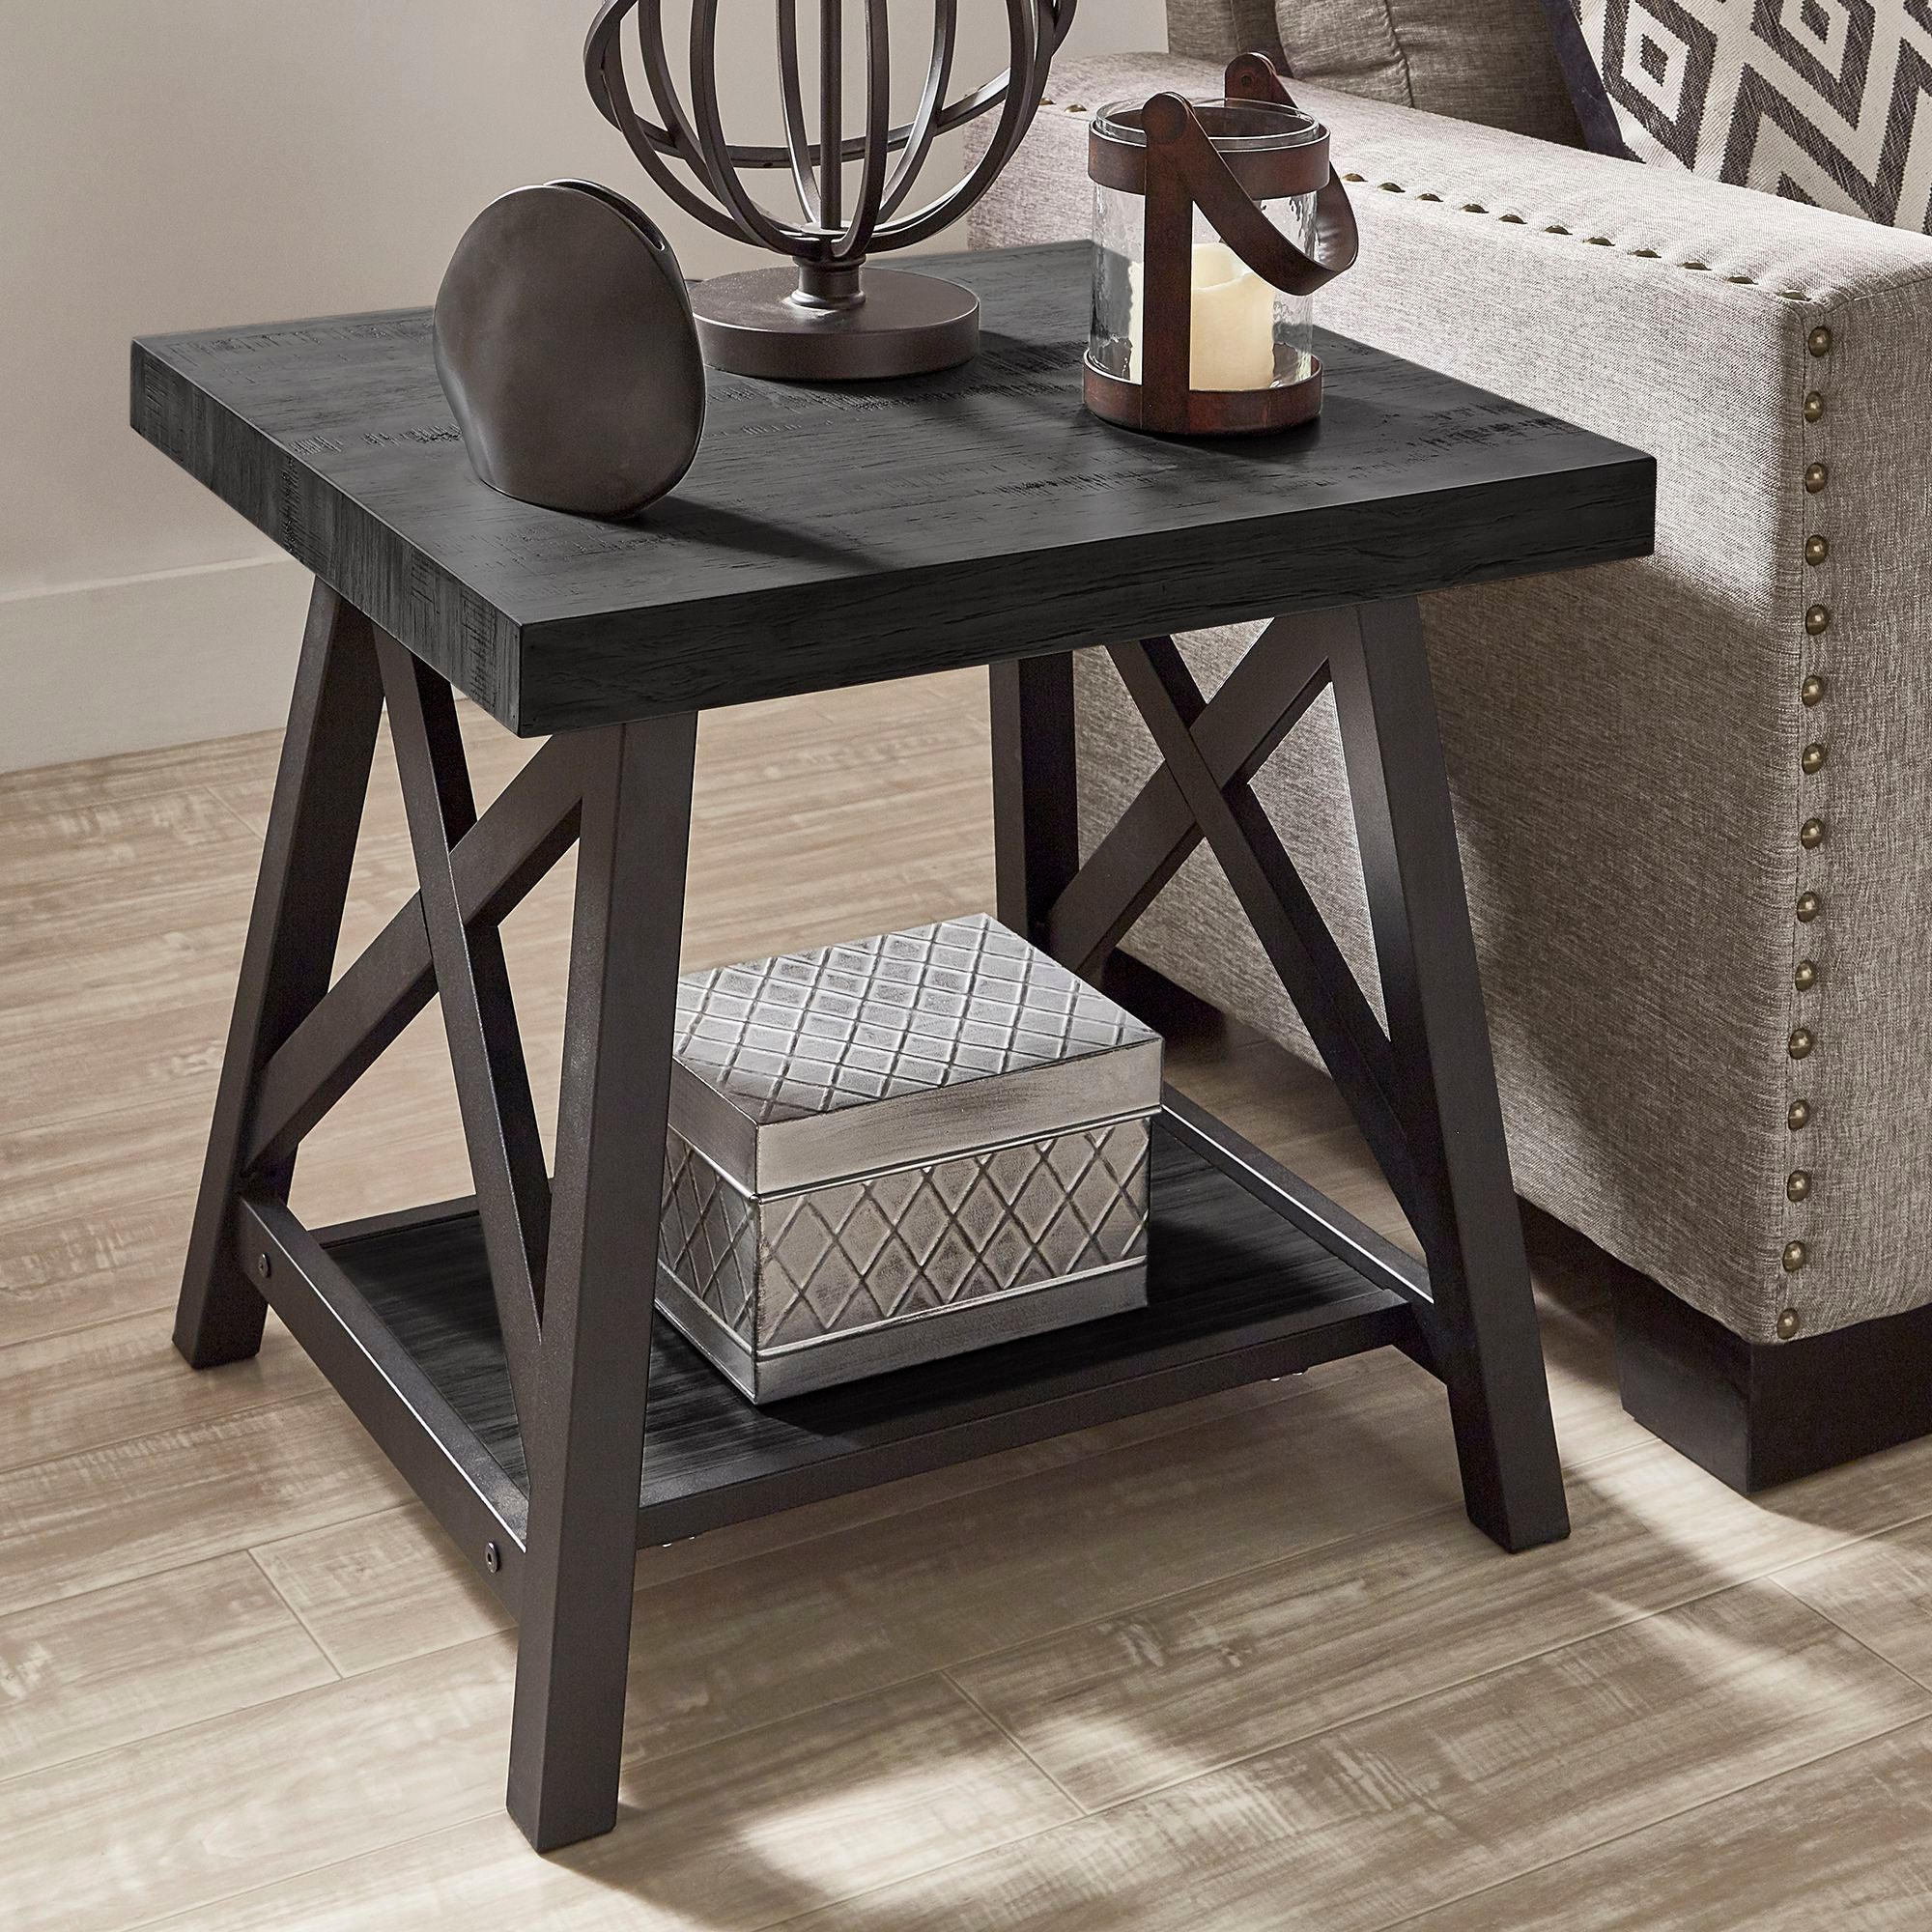 Rustic X-Base End Table with Shelf - Black Finish